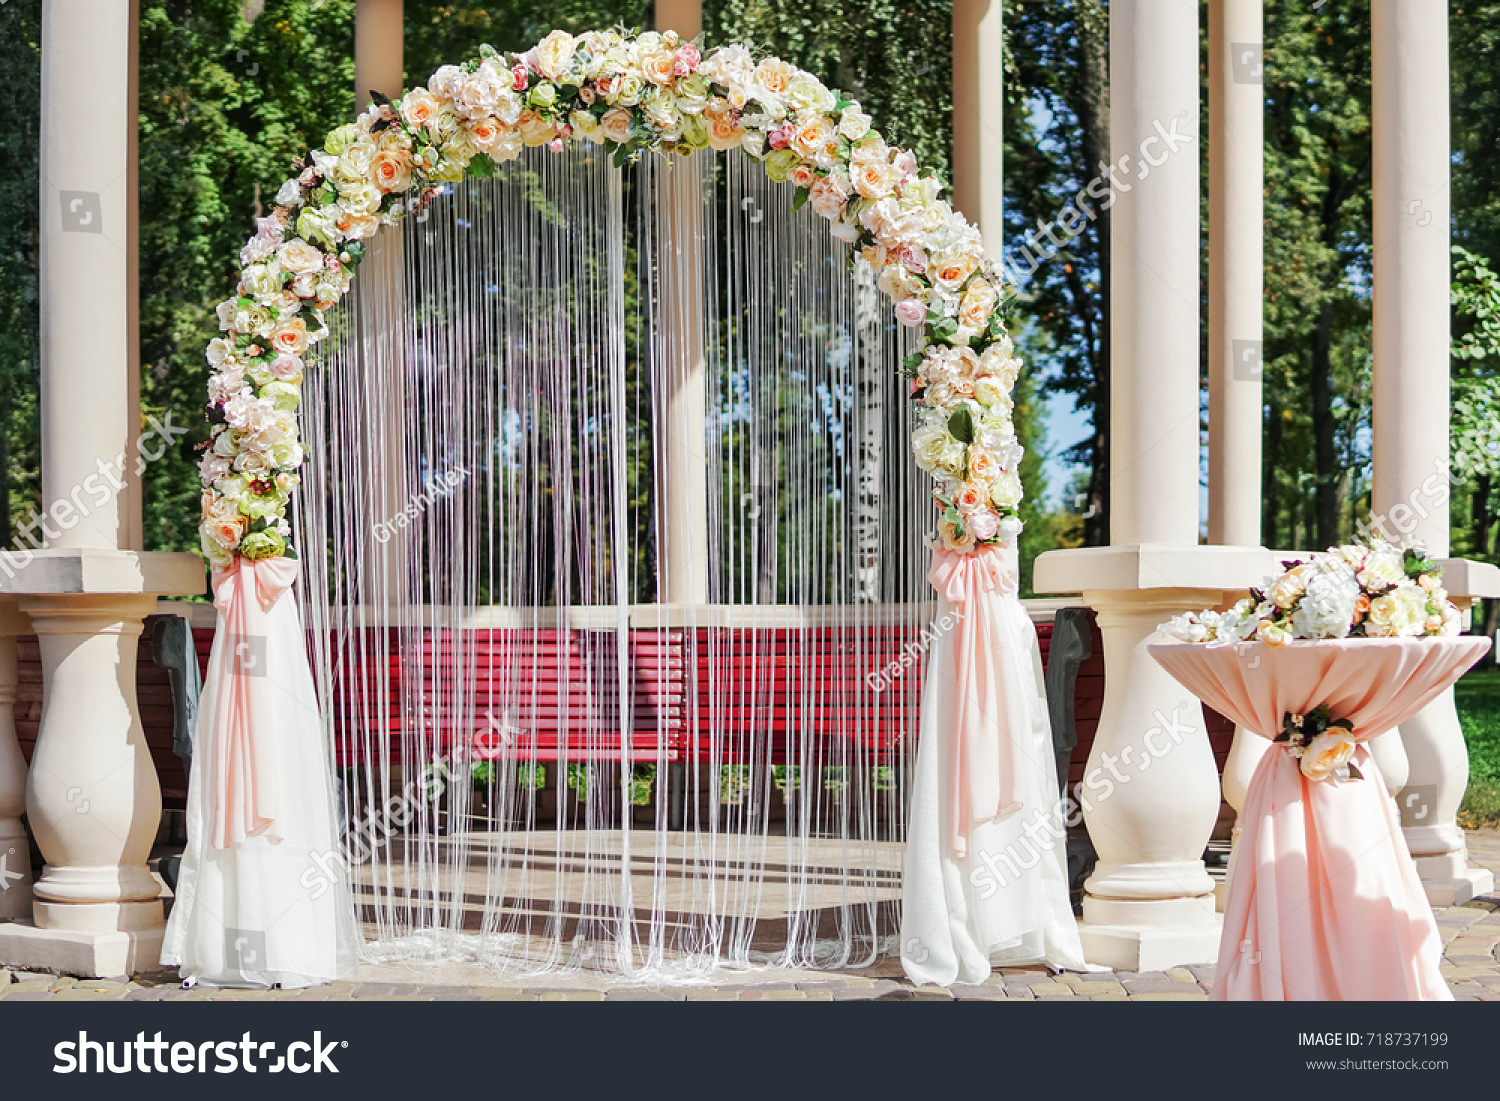 Altar Wedding Decorated Flowers Form Arch Stock Photo Edit Now